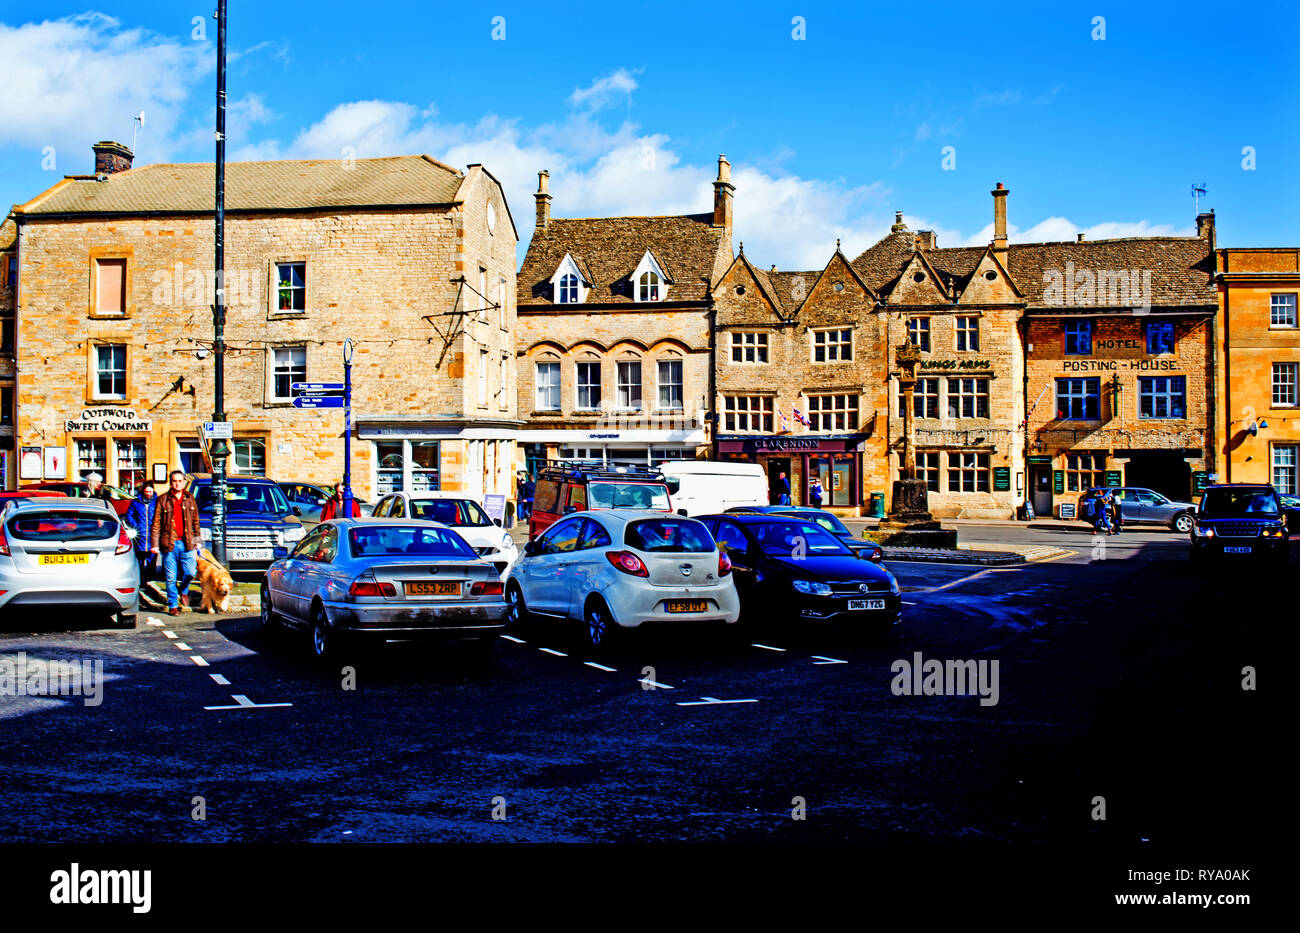 Stow on the wold, Cotswolds, Gloucestershire, England Stock Photo